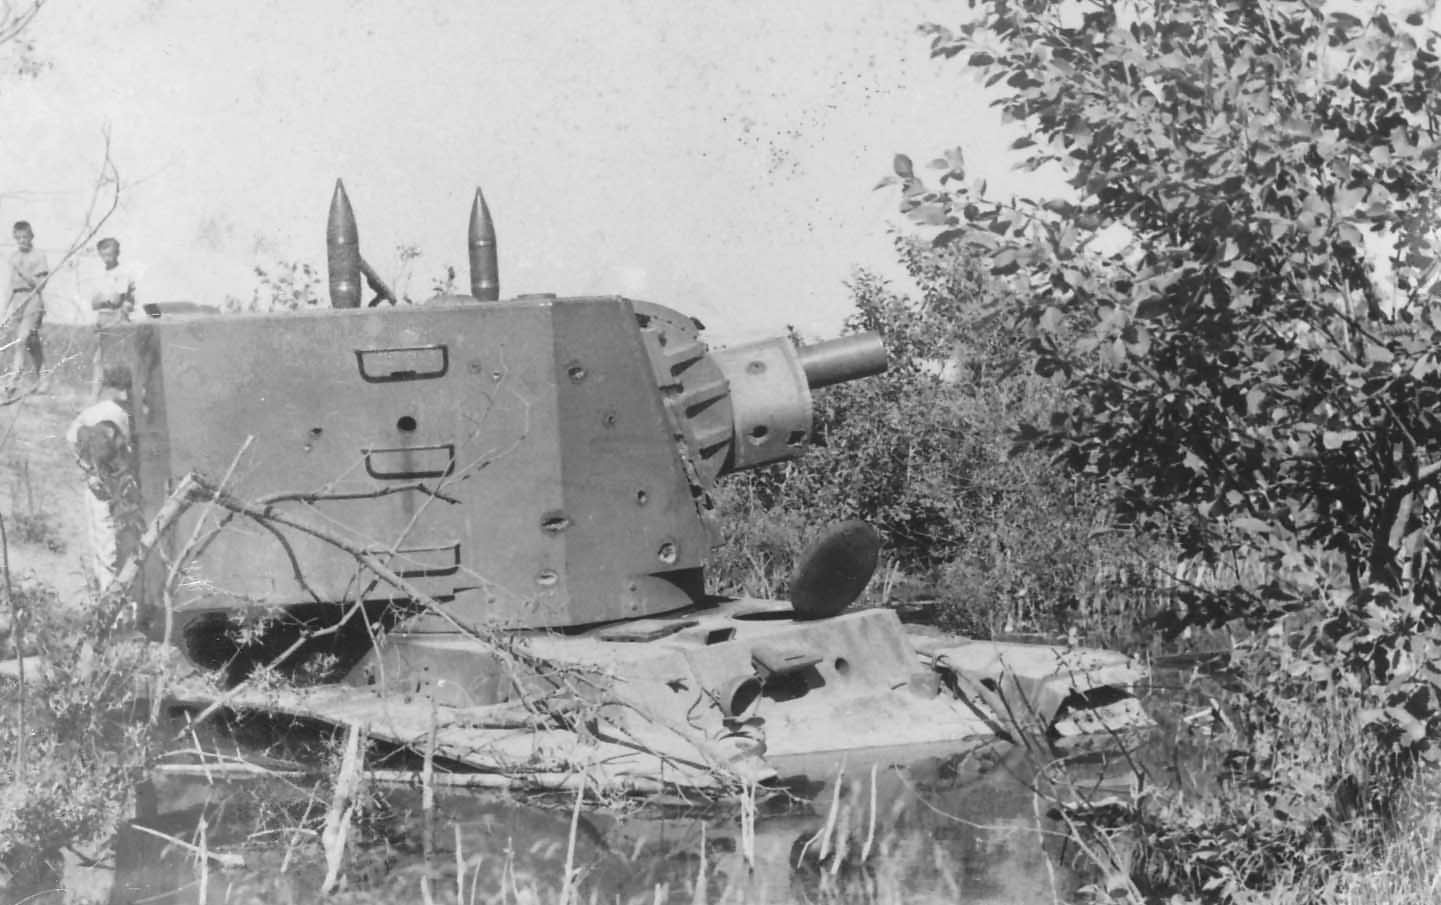 Early production heavy tank KV-2 (model 1940) with a bullet holes in its turret